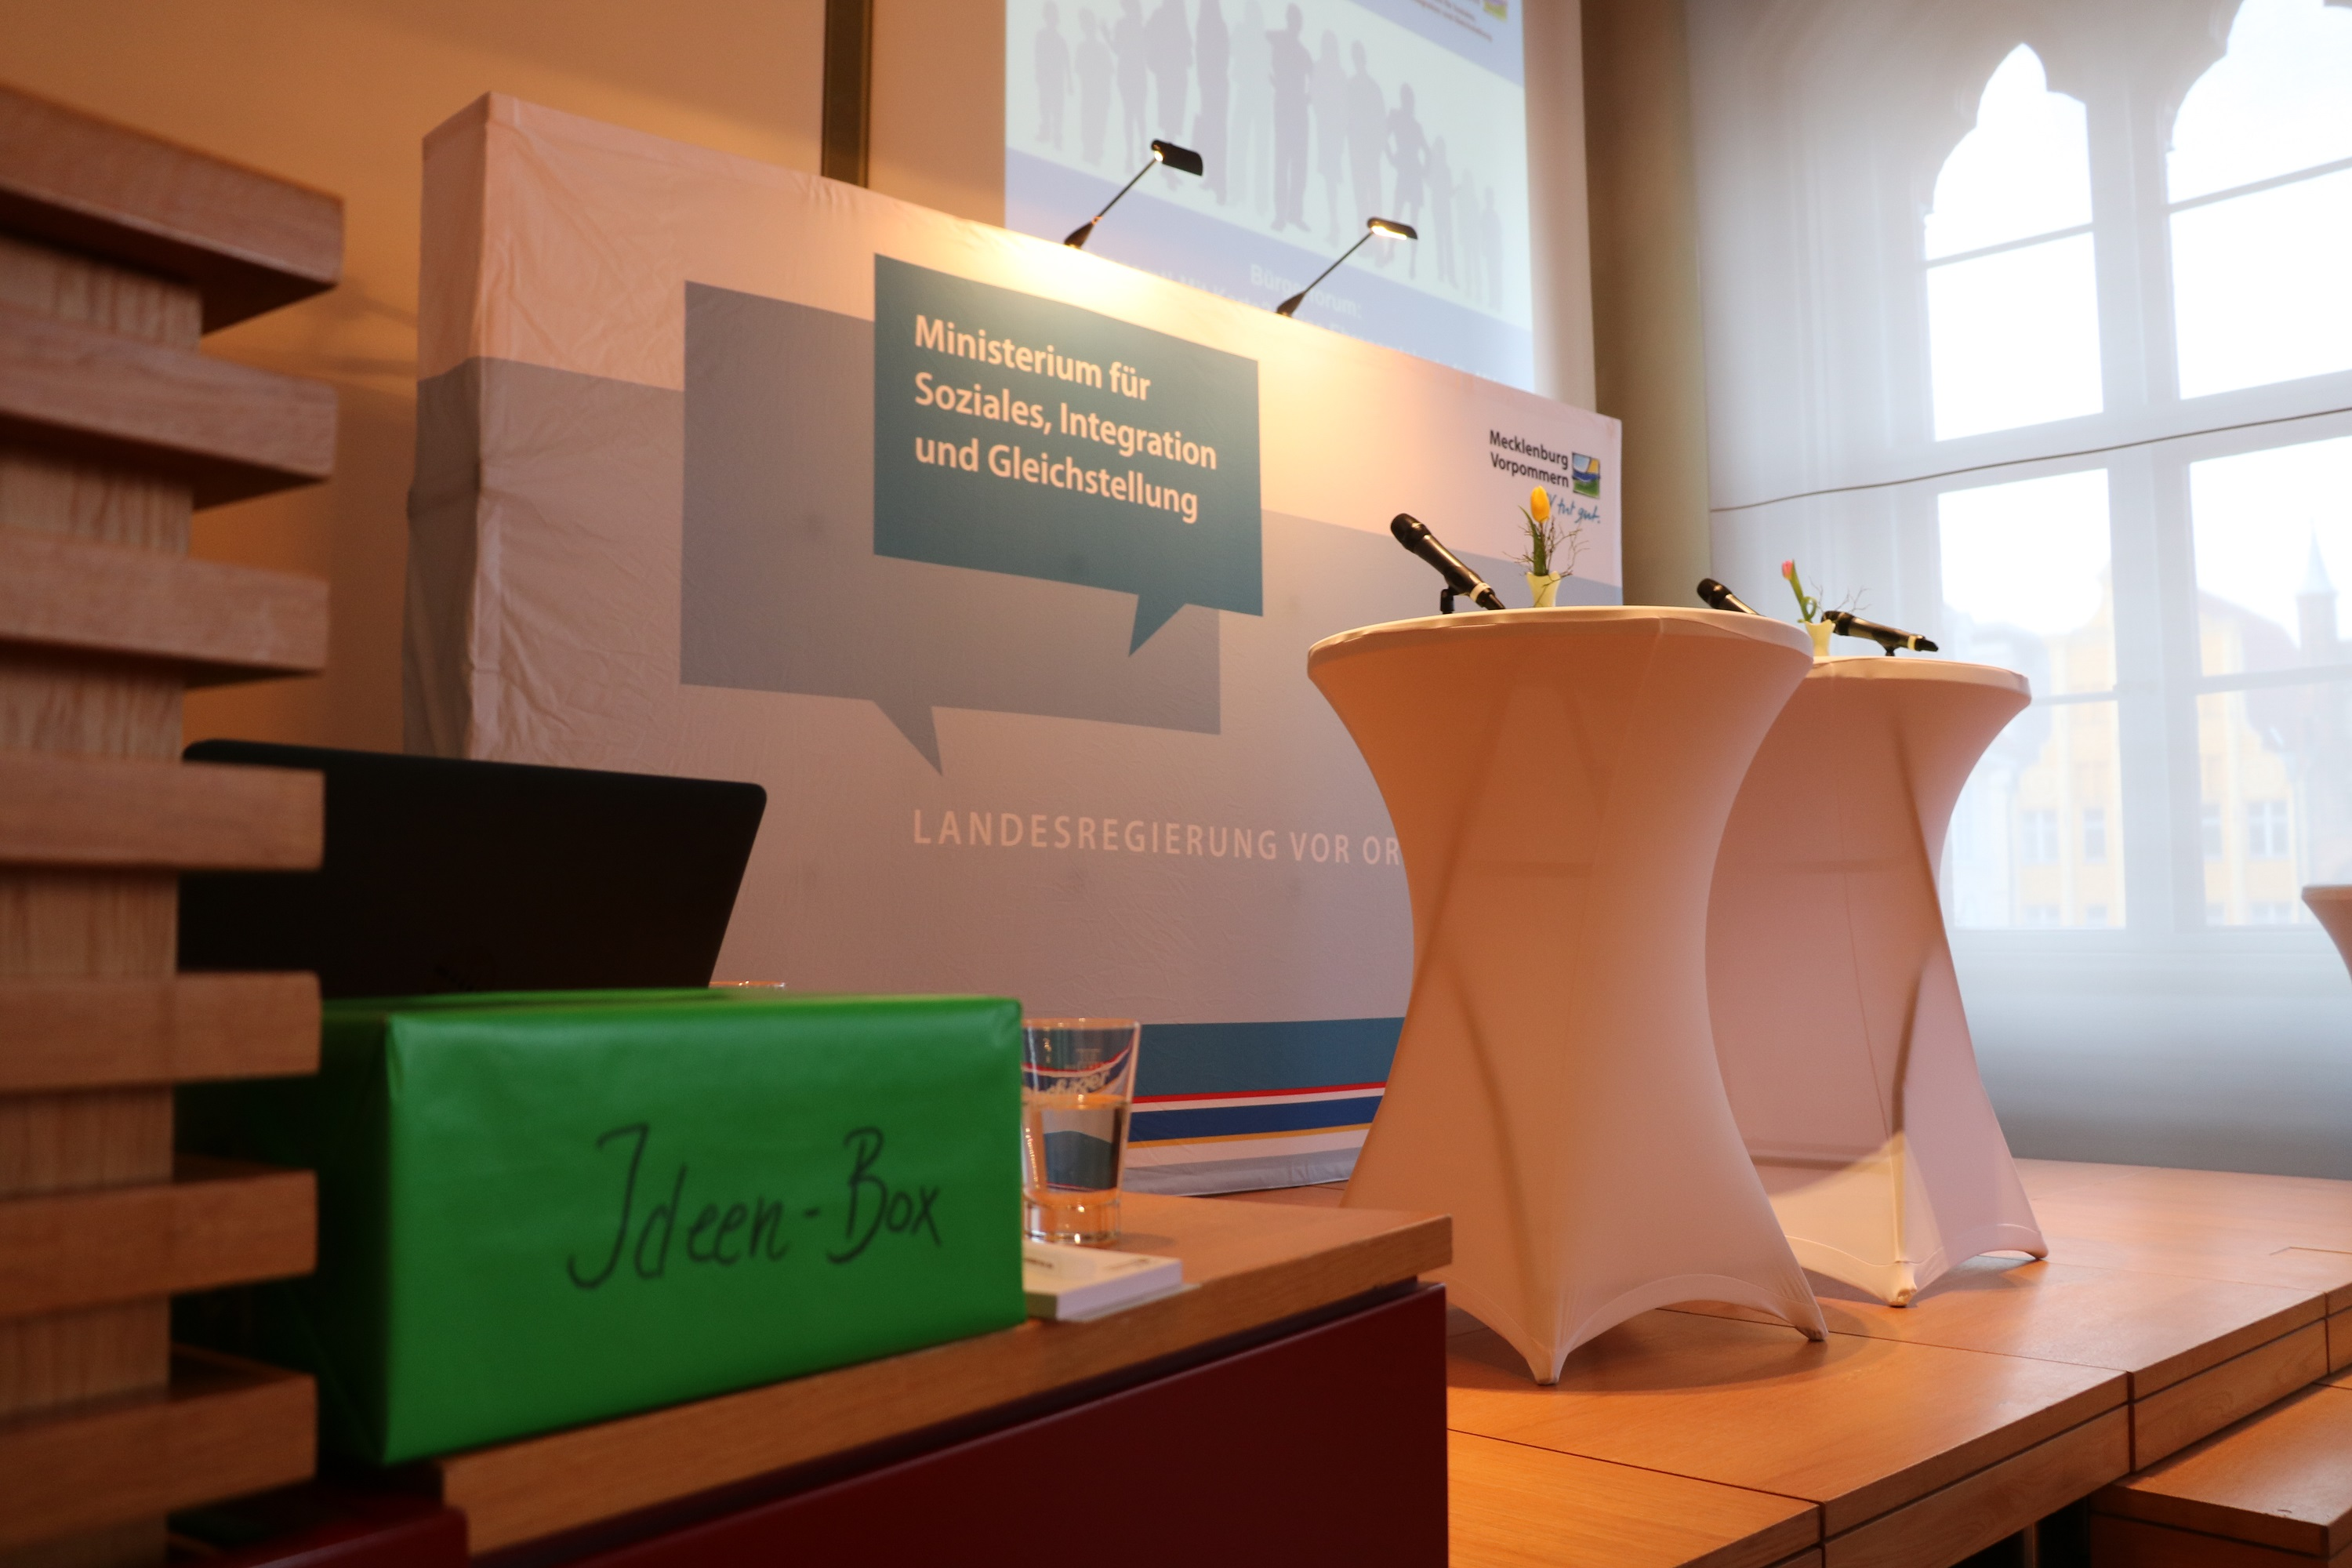 Stralsund Bürgerforum April 2018 - Ideen Box